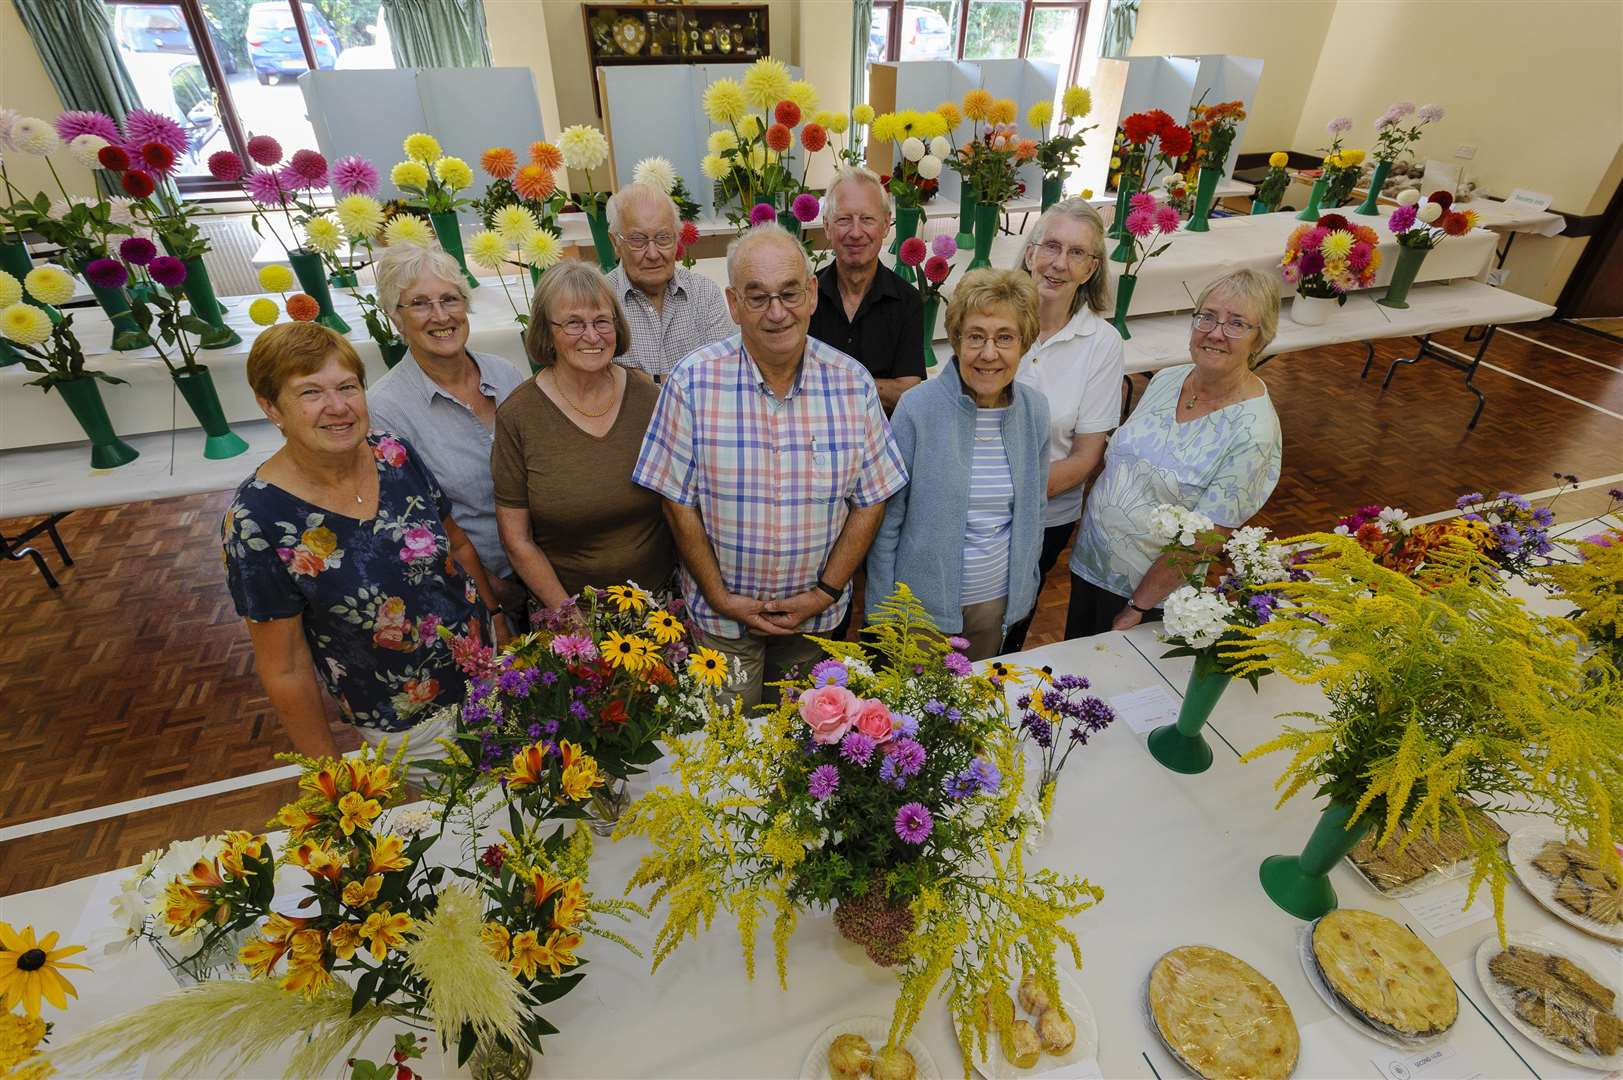 Diss and District Horticultural Society's early autumn flower show at Roydon village hall. Picture by Mark Bullimore.